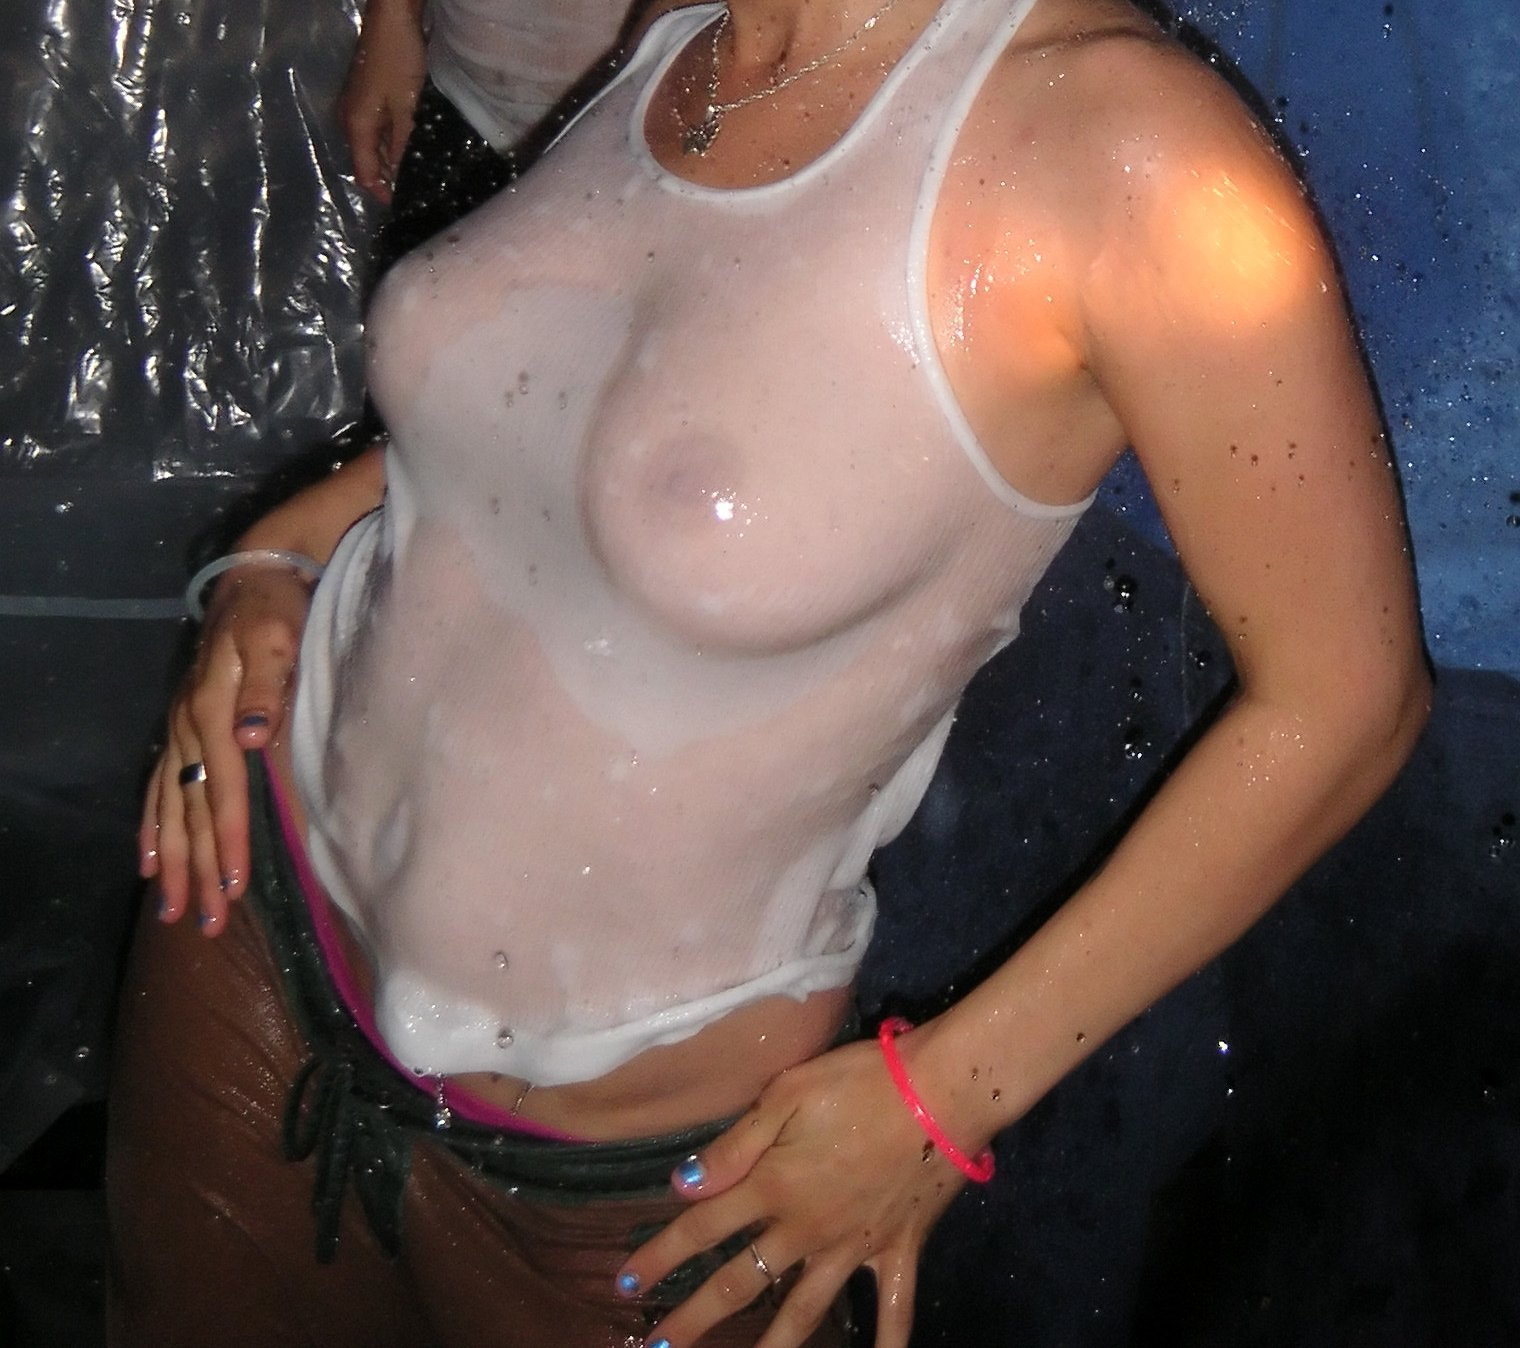 Extremely Sexy Real College Girls in a Hot and Dirty Wet